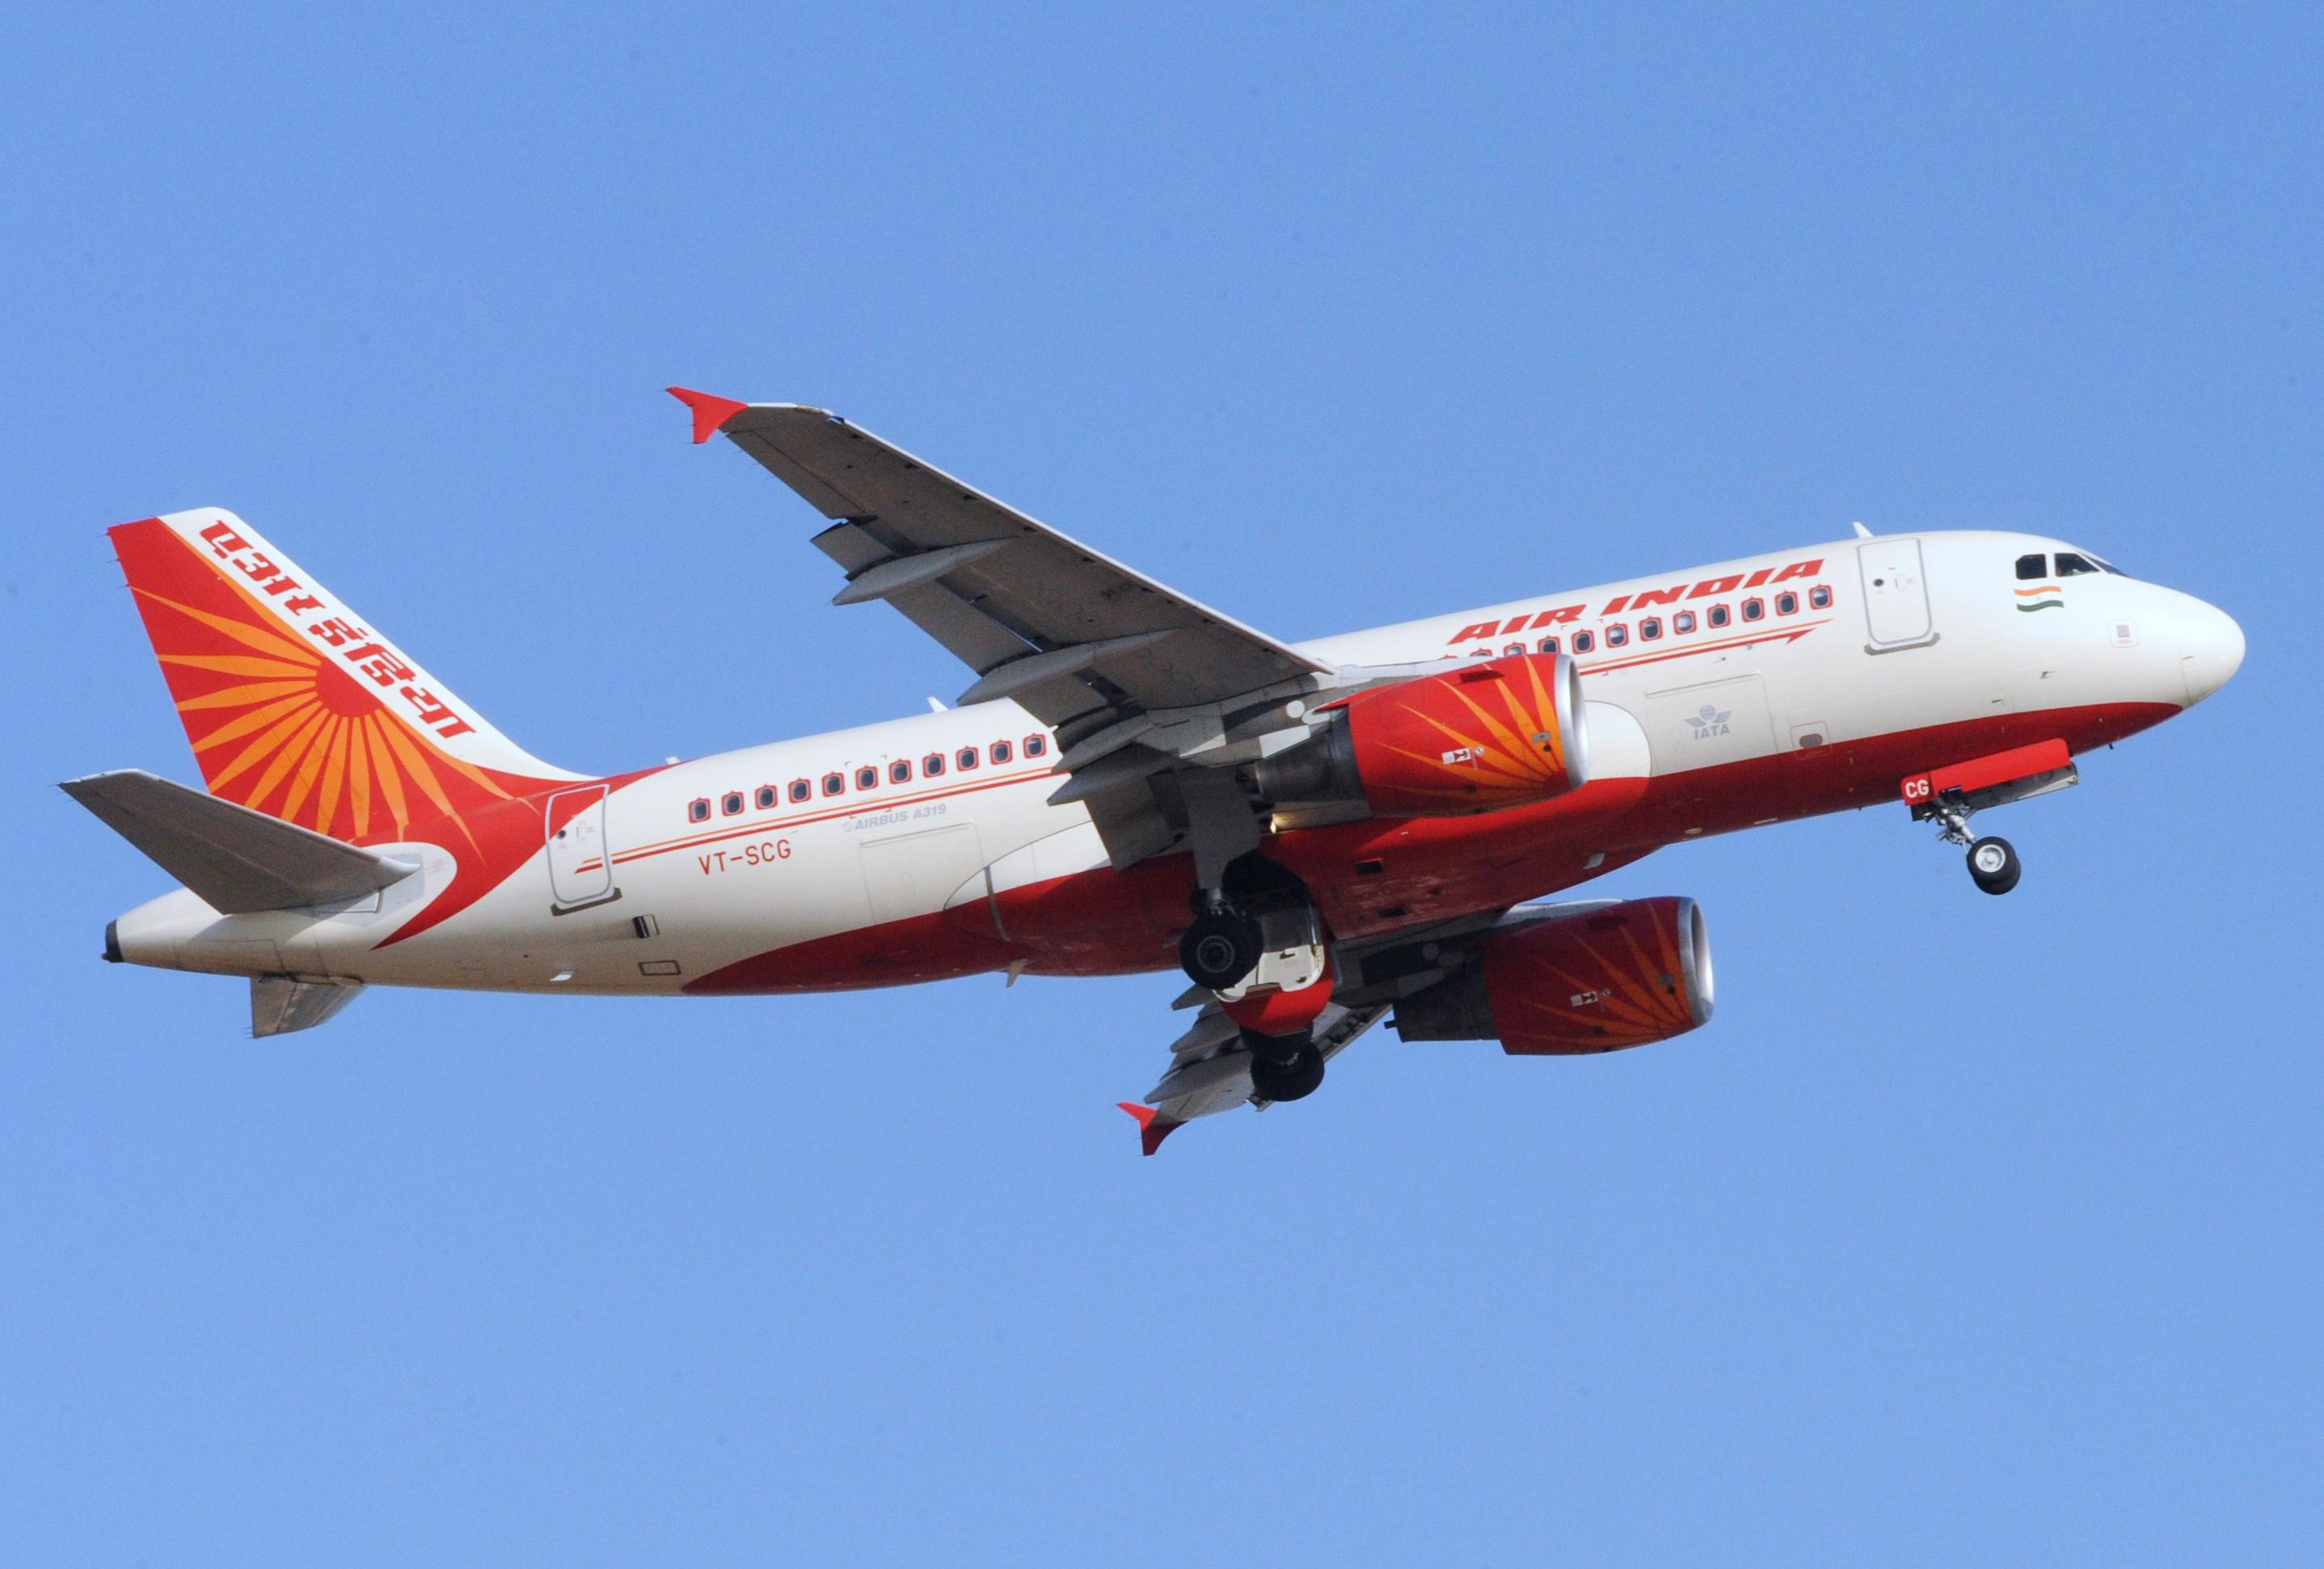 Bomb scare after unattended bag found in Air India Delhi-Mumbai flight